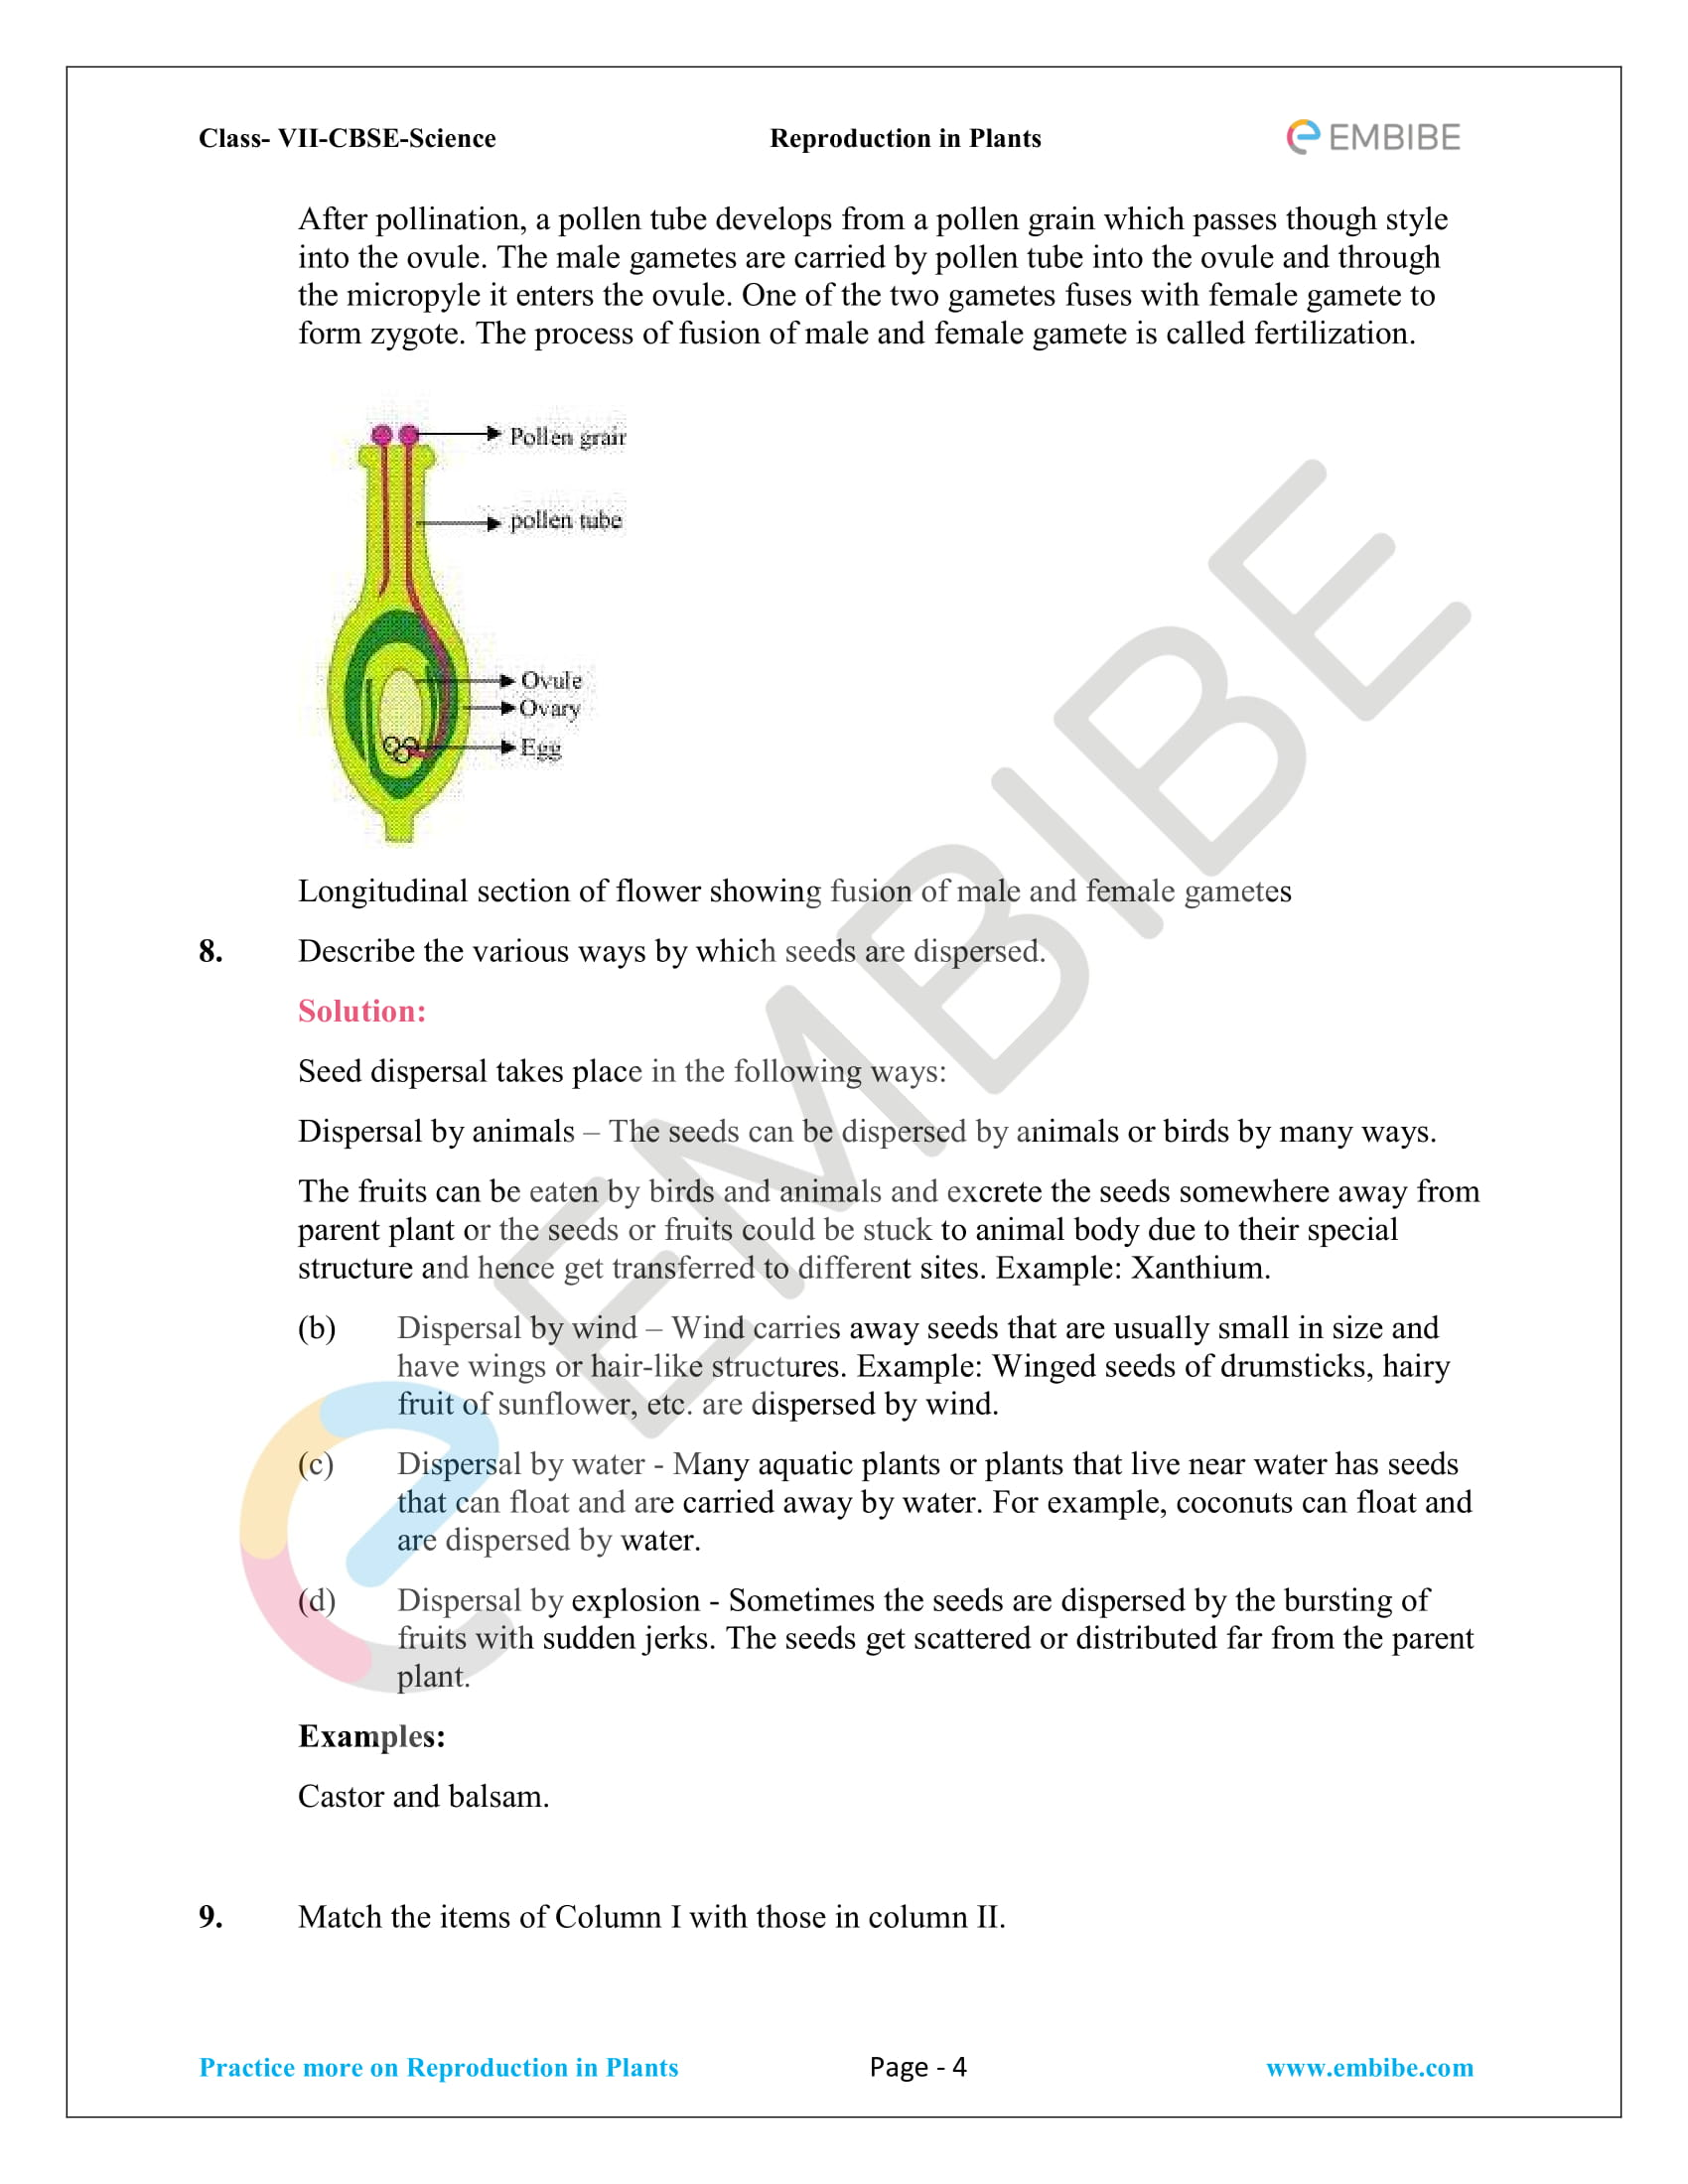 NCERT_G7_BOC_Biology_Reproduction in plants-4